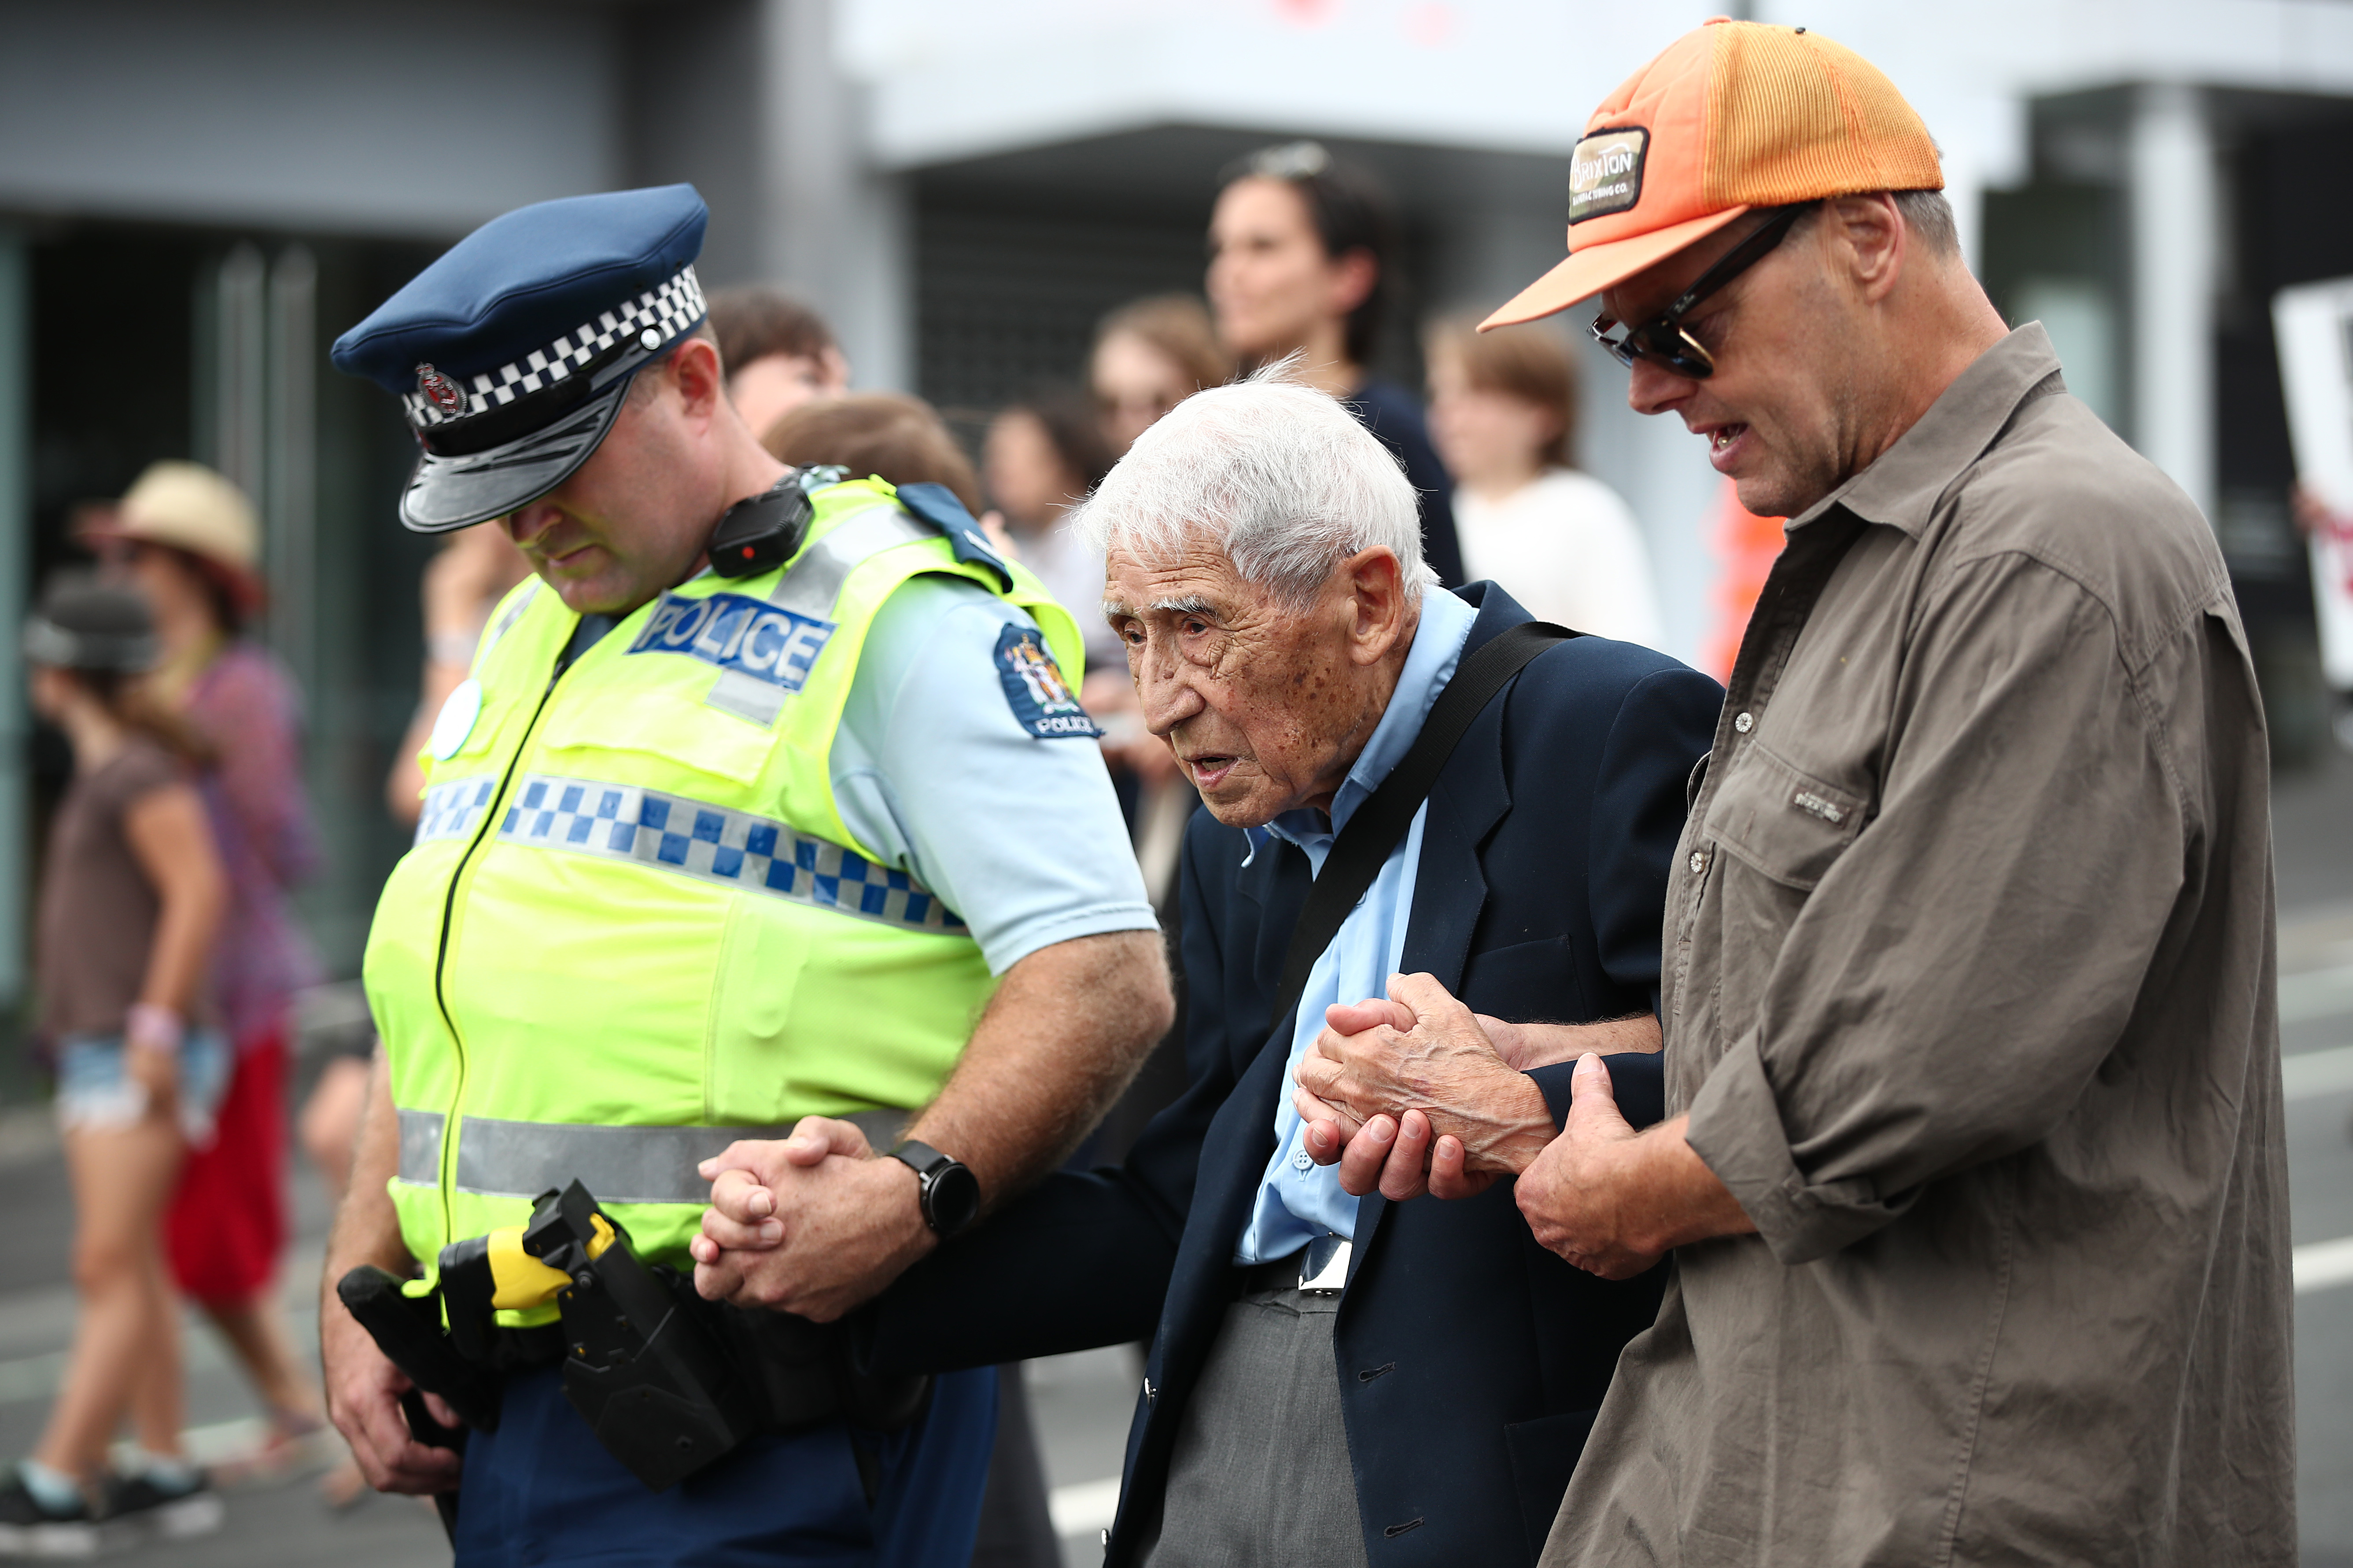 John Sato (C) 95, one of only two Japaenses servicemen in the New Zealand army in WWII, took two buses from Howick to join the march against racism at Aotea Square on March 24, 2019 in Auckland, New Zealand. (Getty Images)